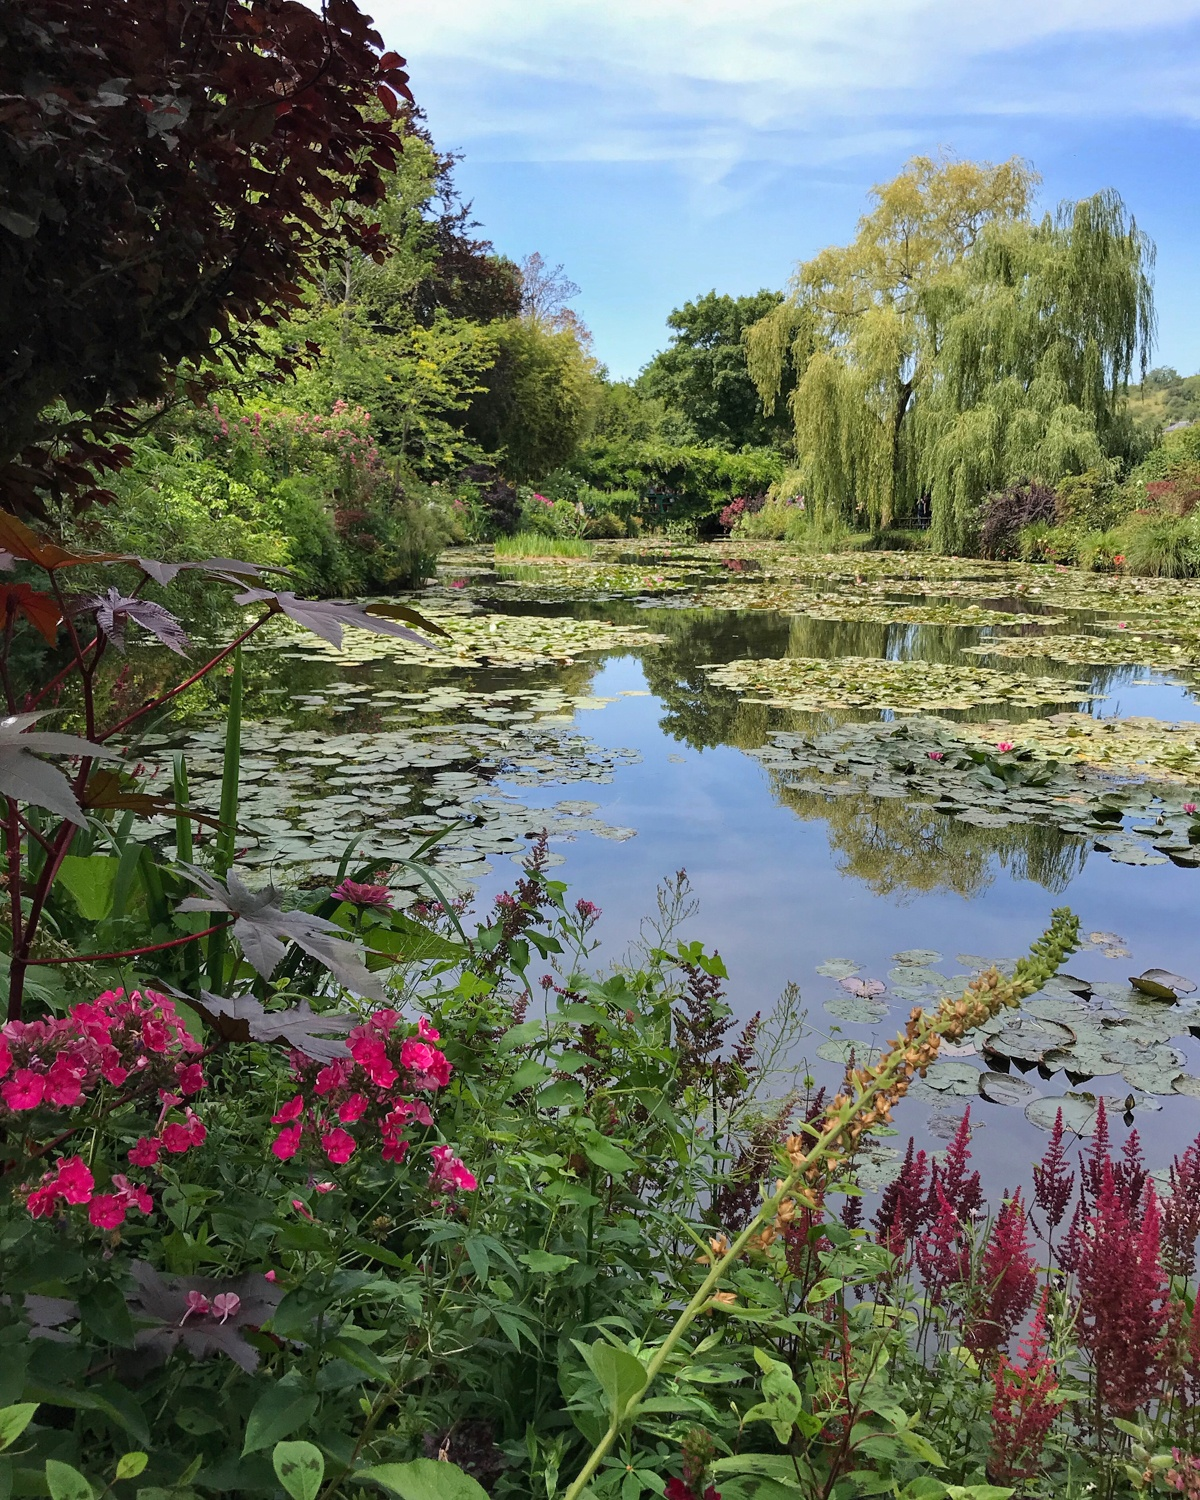 Claude Monet Water Lilies in Giverny Photo Heatheronhertravels.com